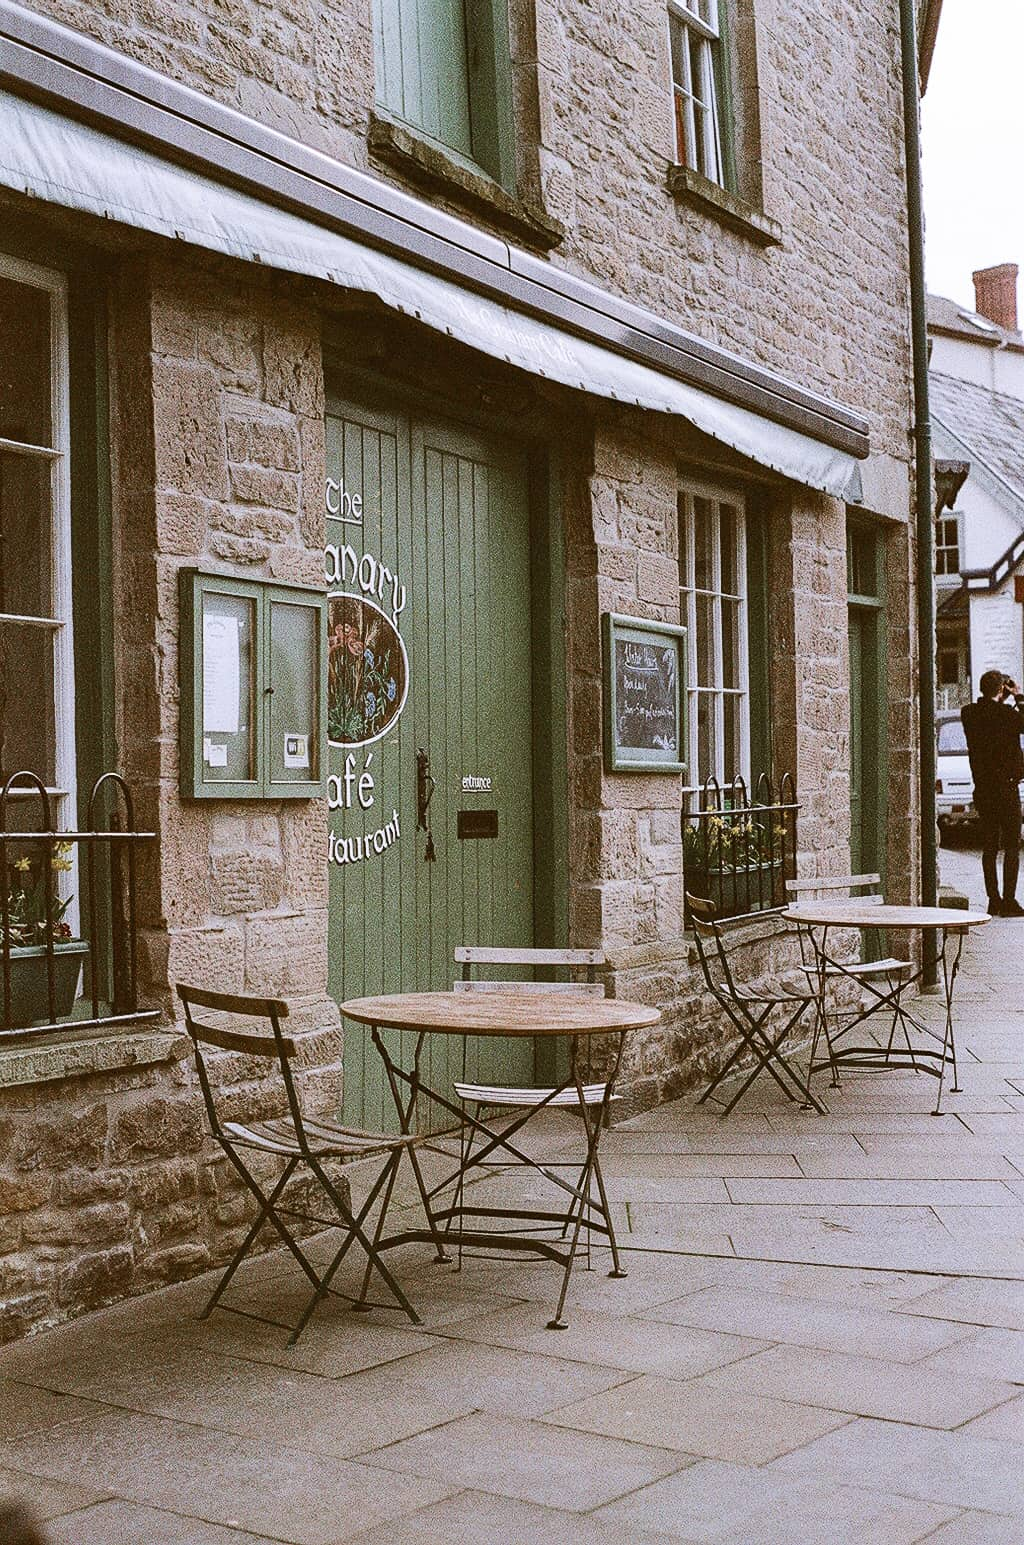 hay on wye 35mm film photography